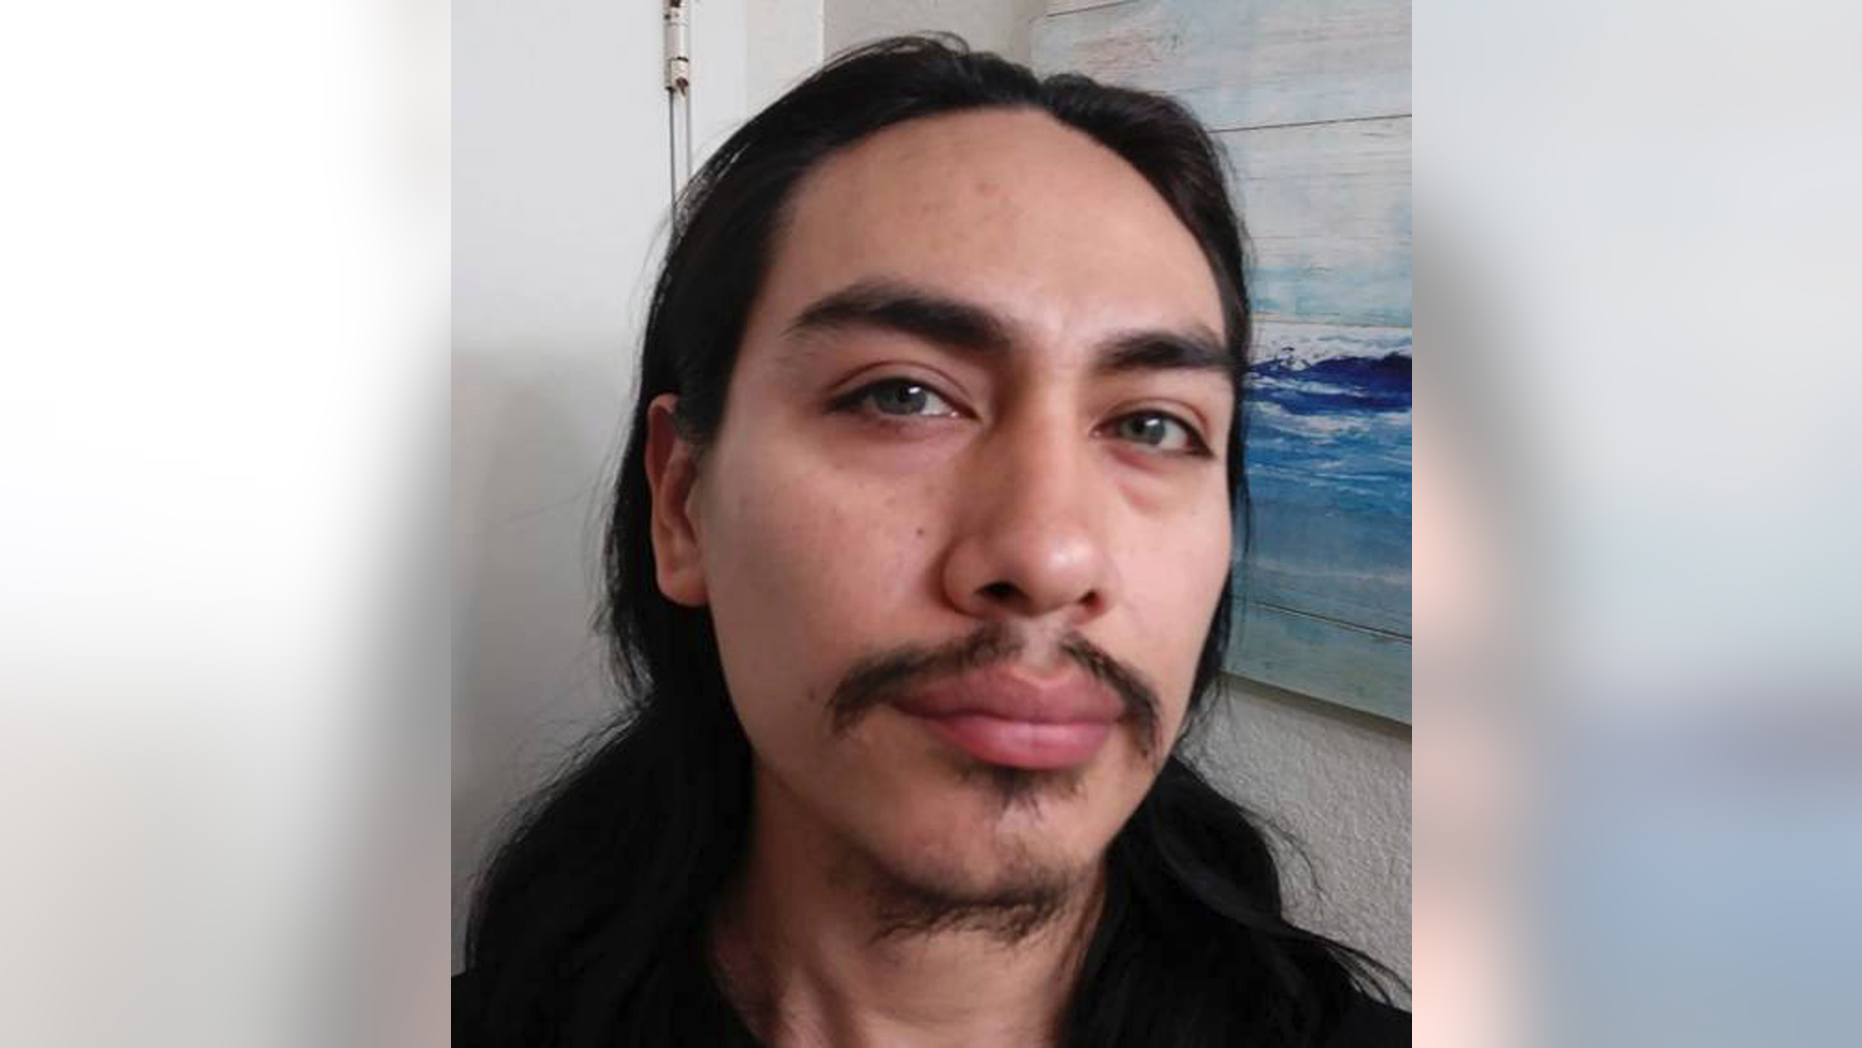 Police are searching for Jacob Gonzales, who they identified as a person of interest in the slaying of a 26-year-old woman found beheaded near a survivalist bunker on Saturday.